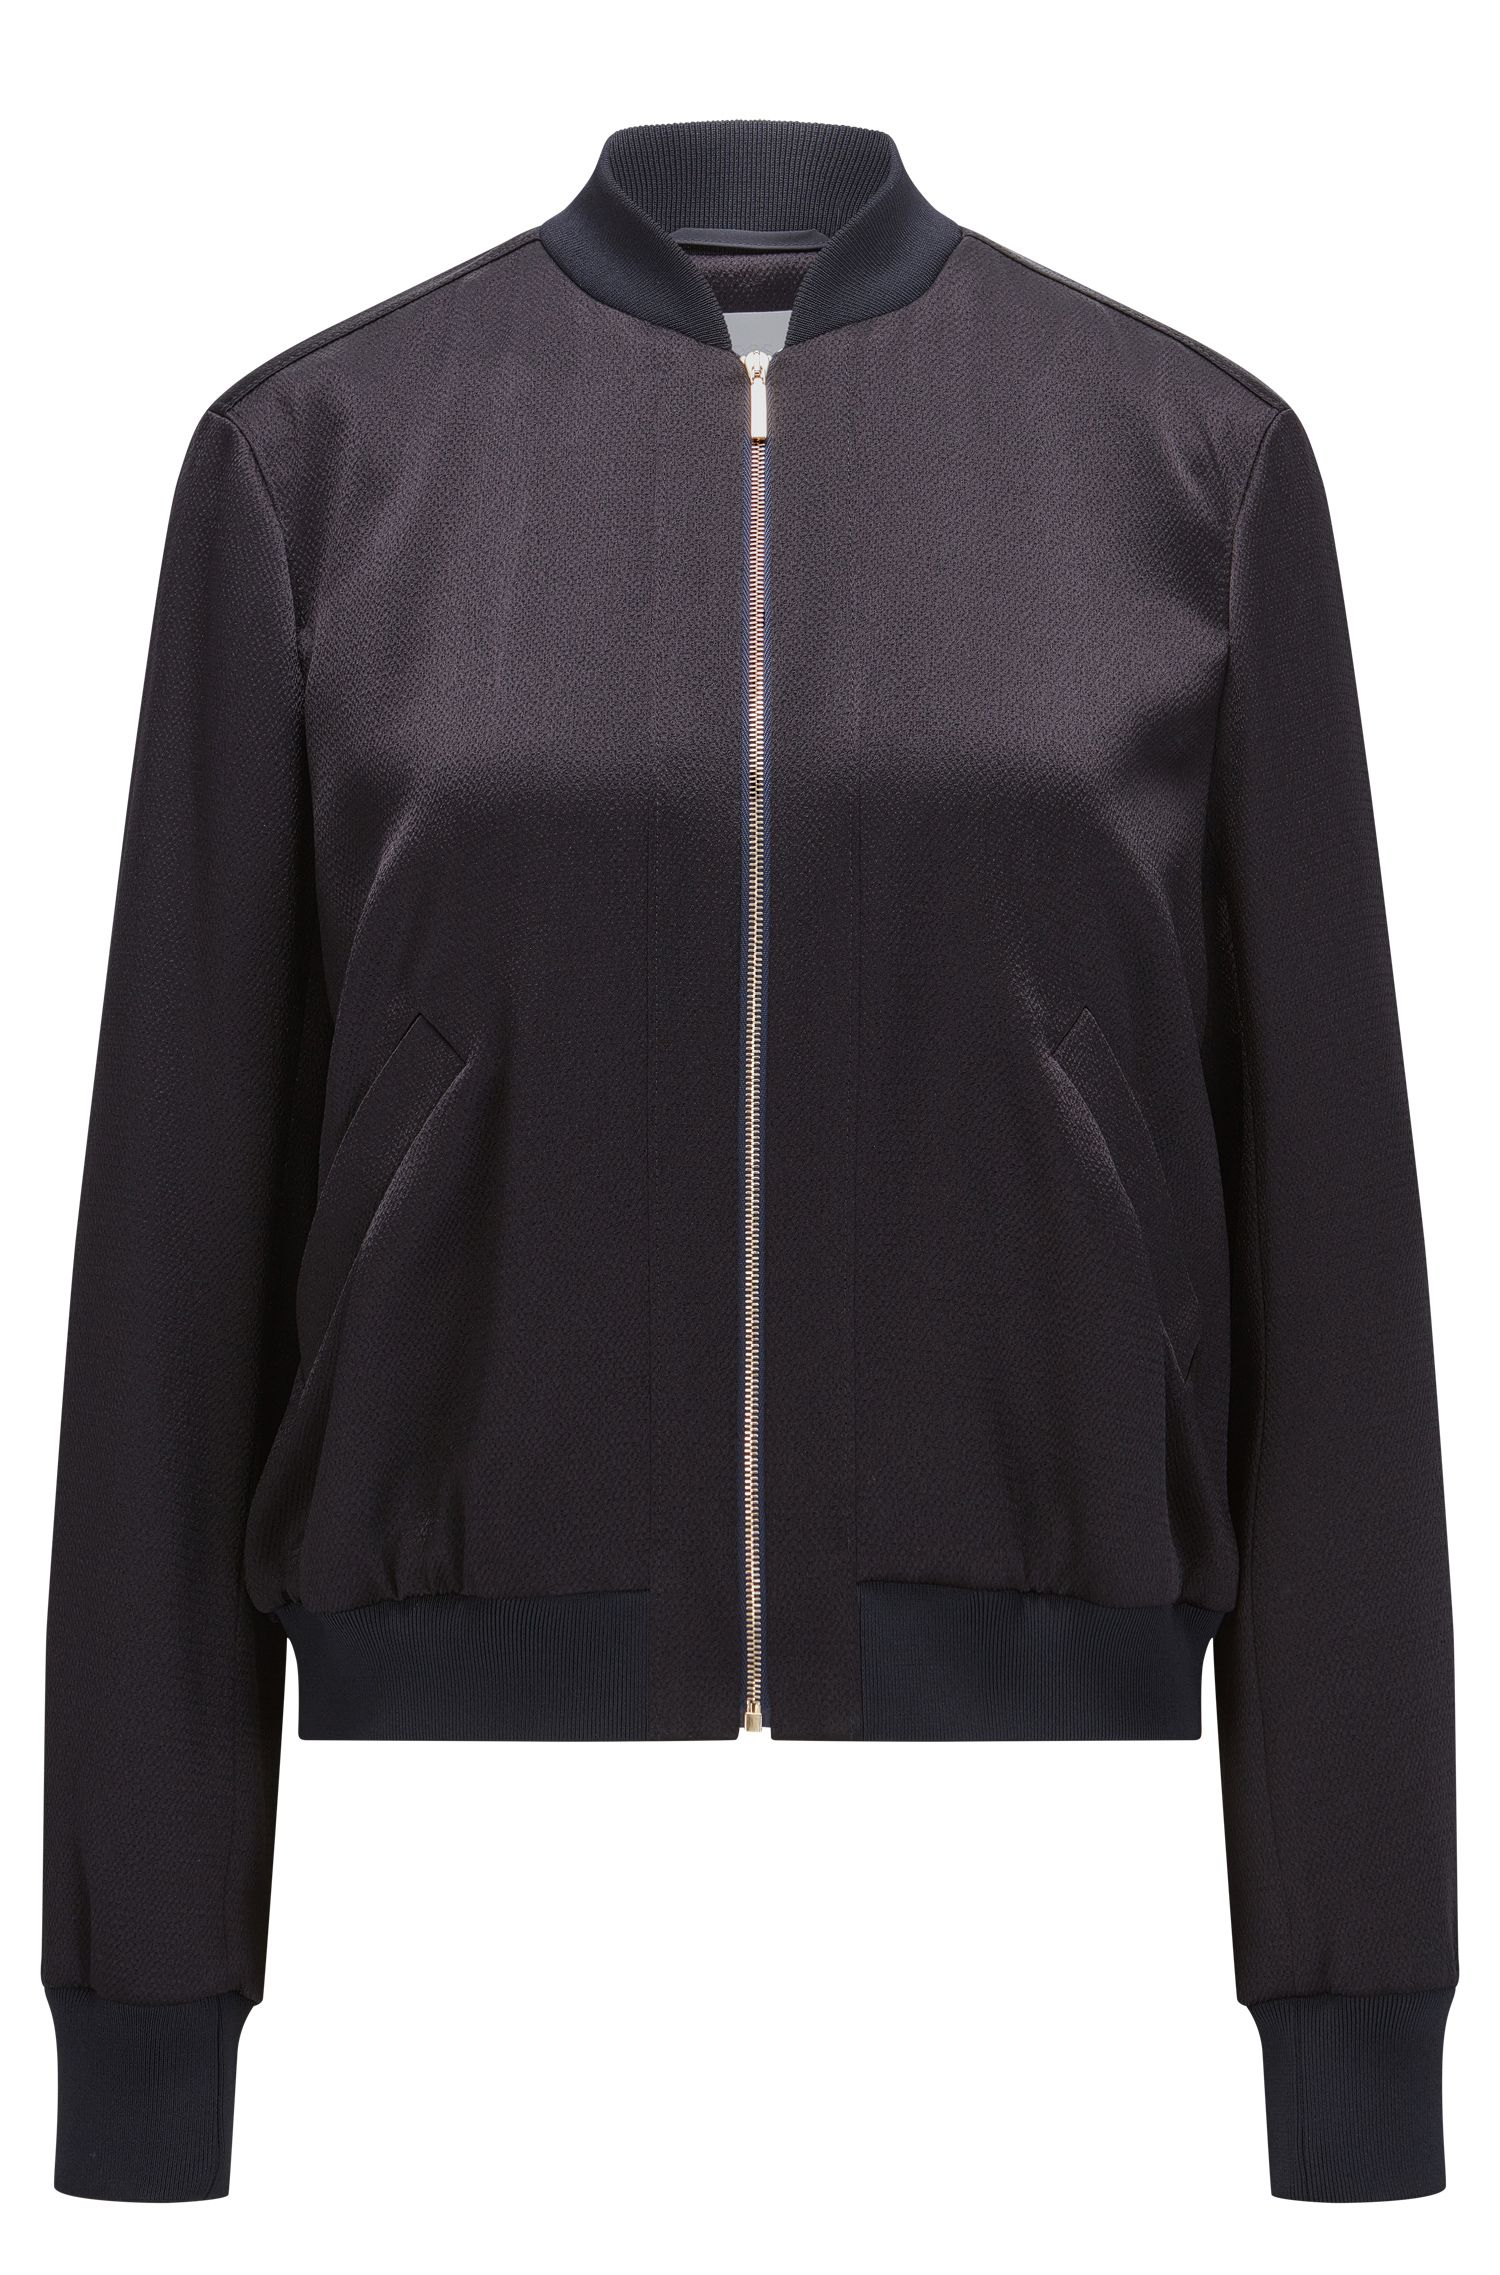 Relaxed-fit bomber jacket in structured fabric